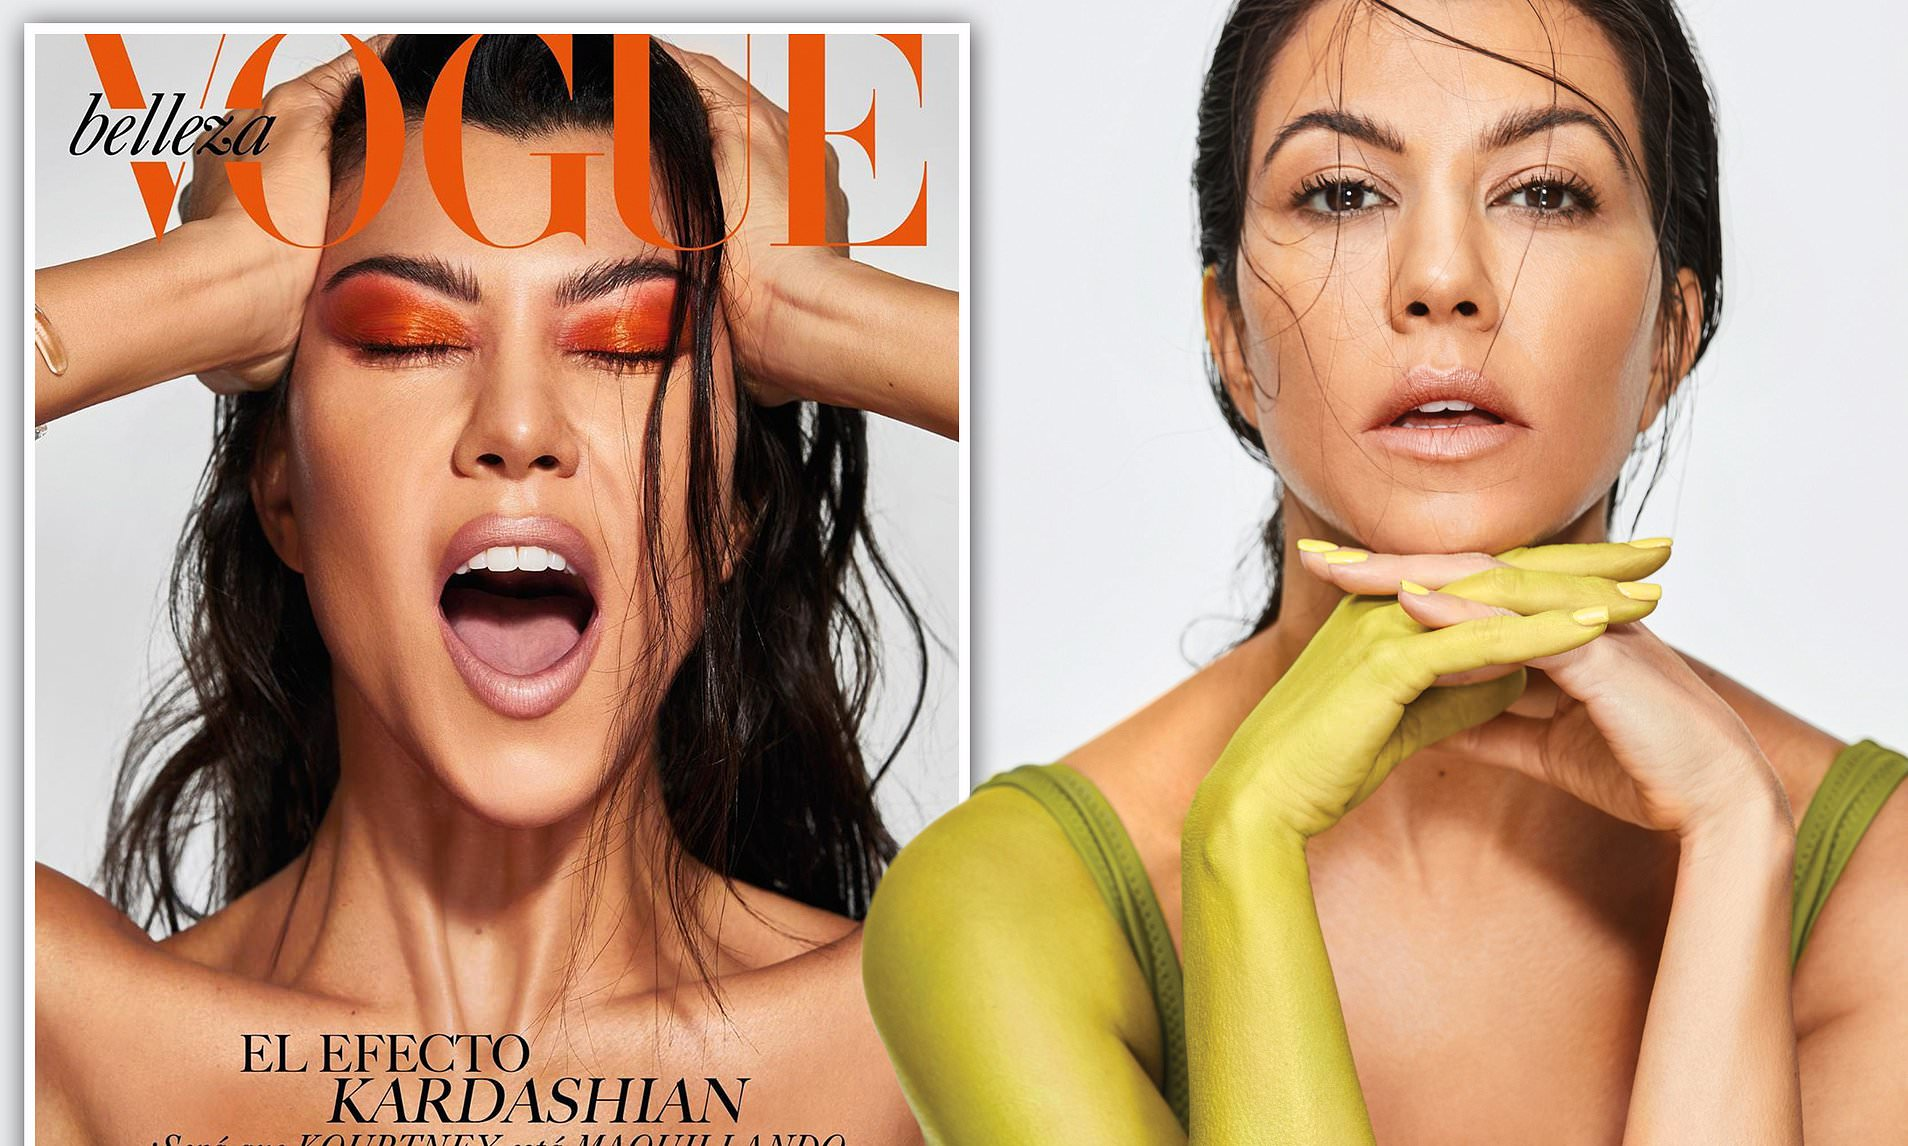 Kourtney Kardashian Graces The Cover Of Vogue Mexico And Wears Nothing But A Neon Eyeshadow